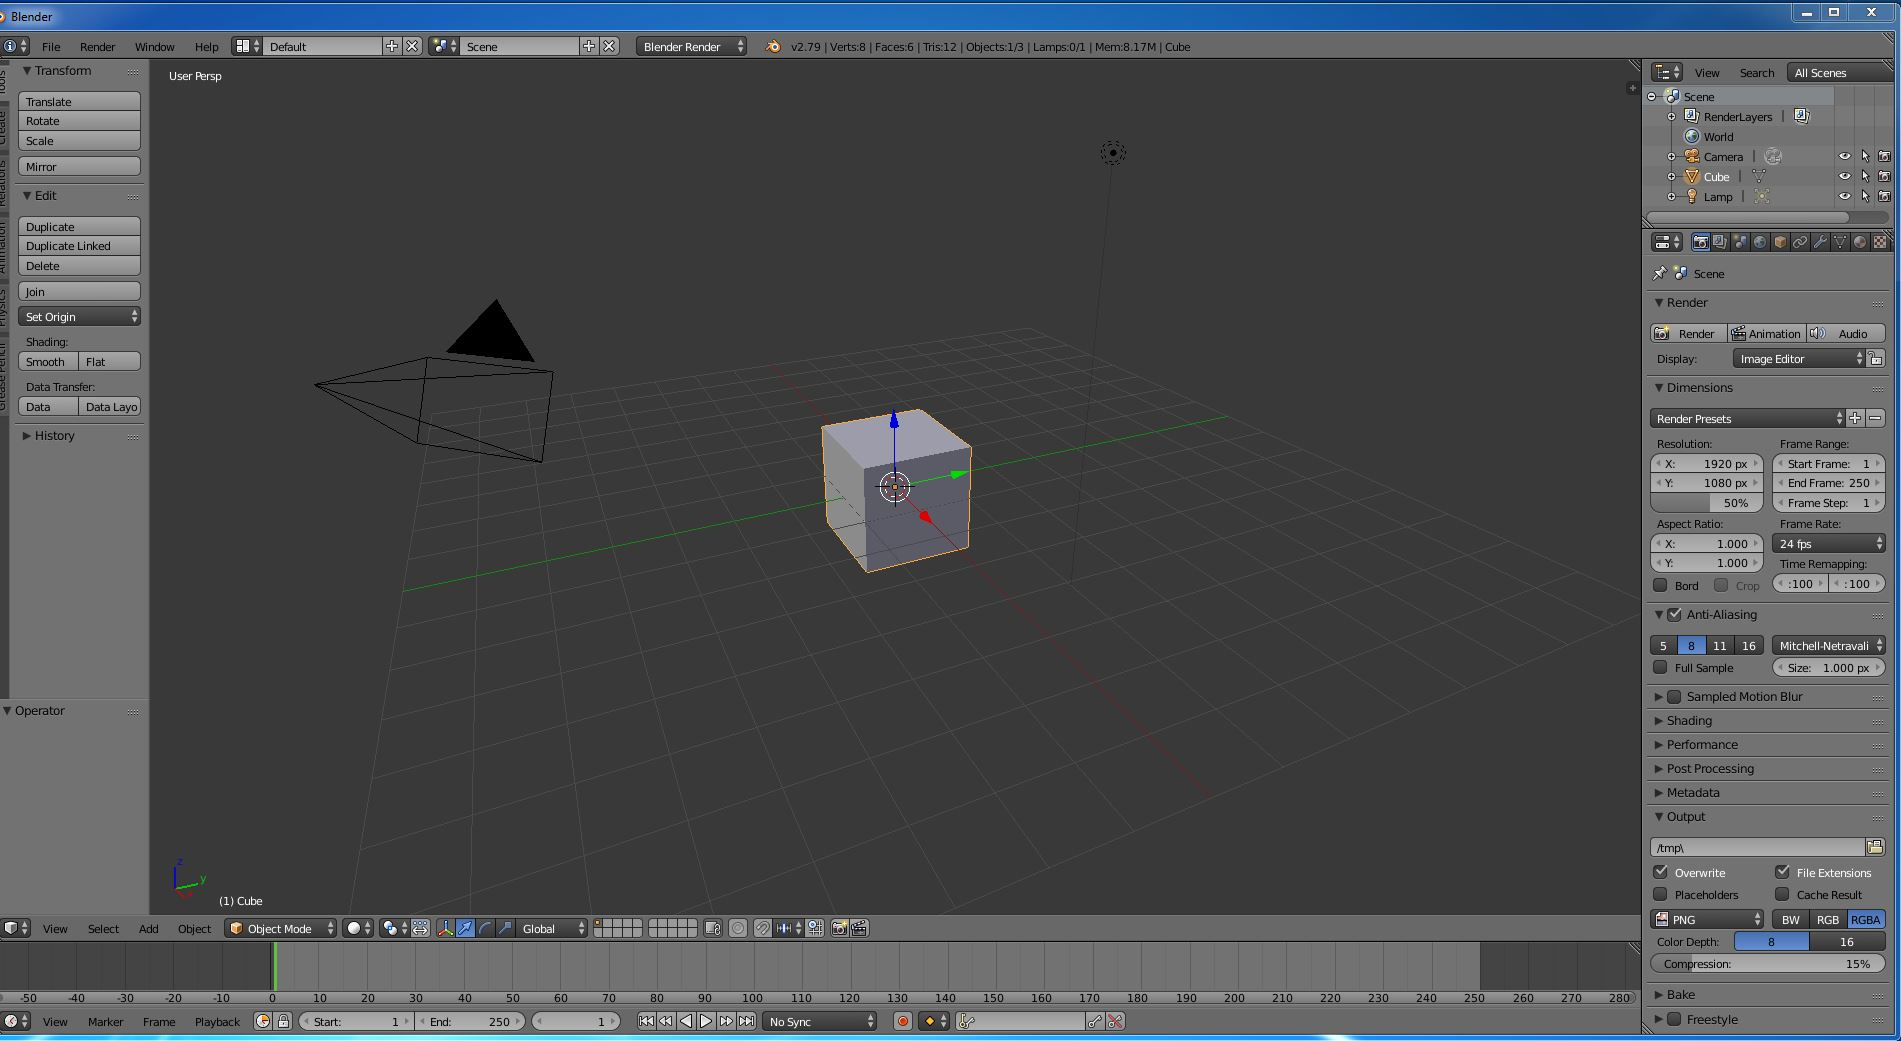 Screenshot der Arbeitsoberfläche der Blender Software